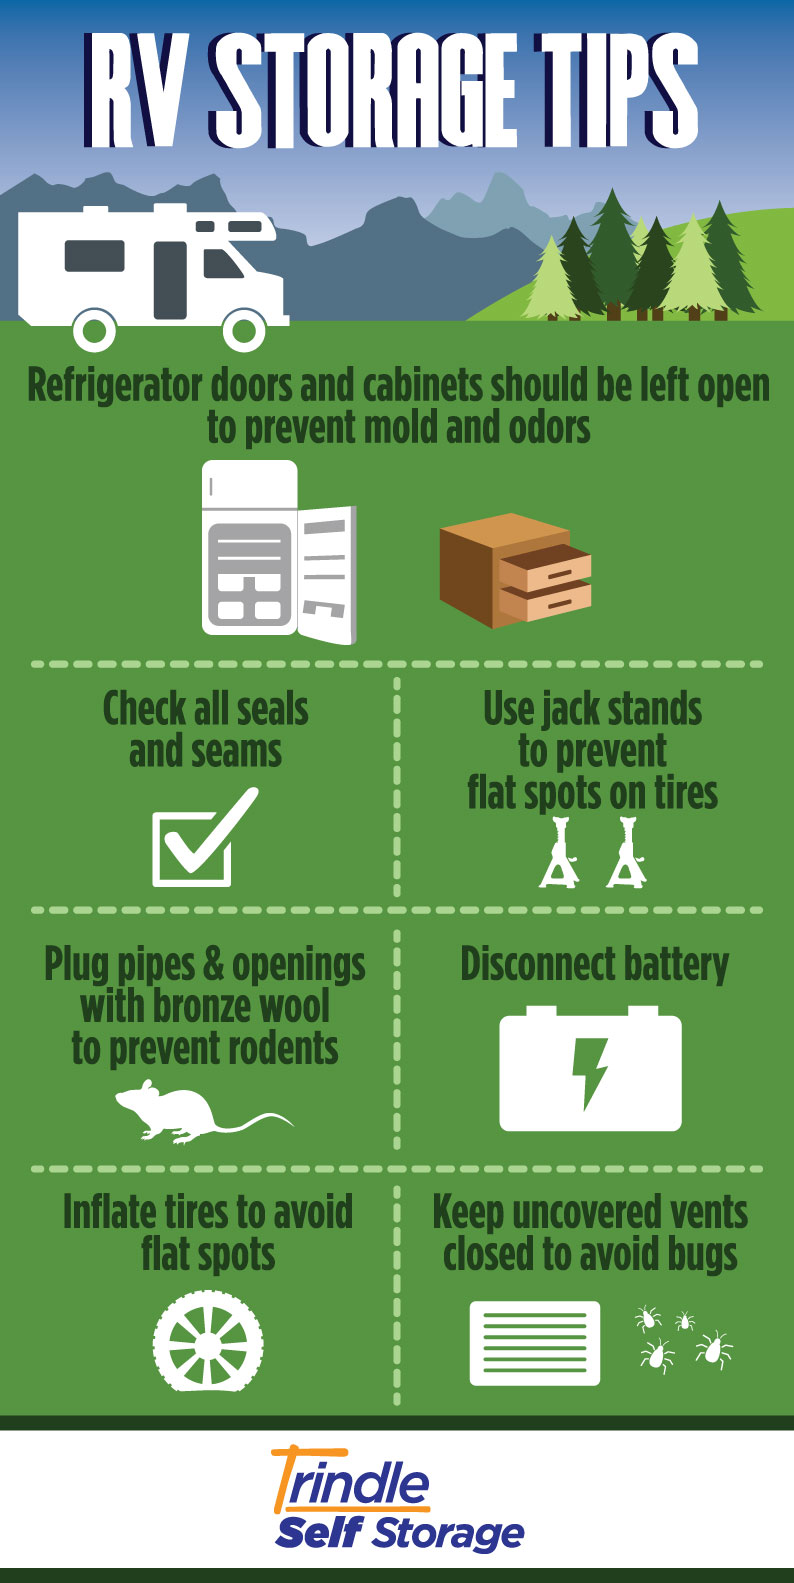 Infographic by Trindle Self Storage